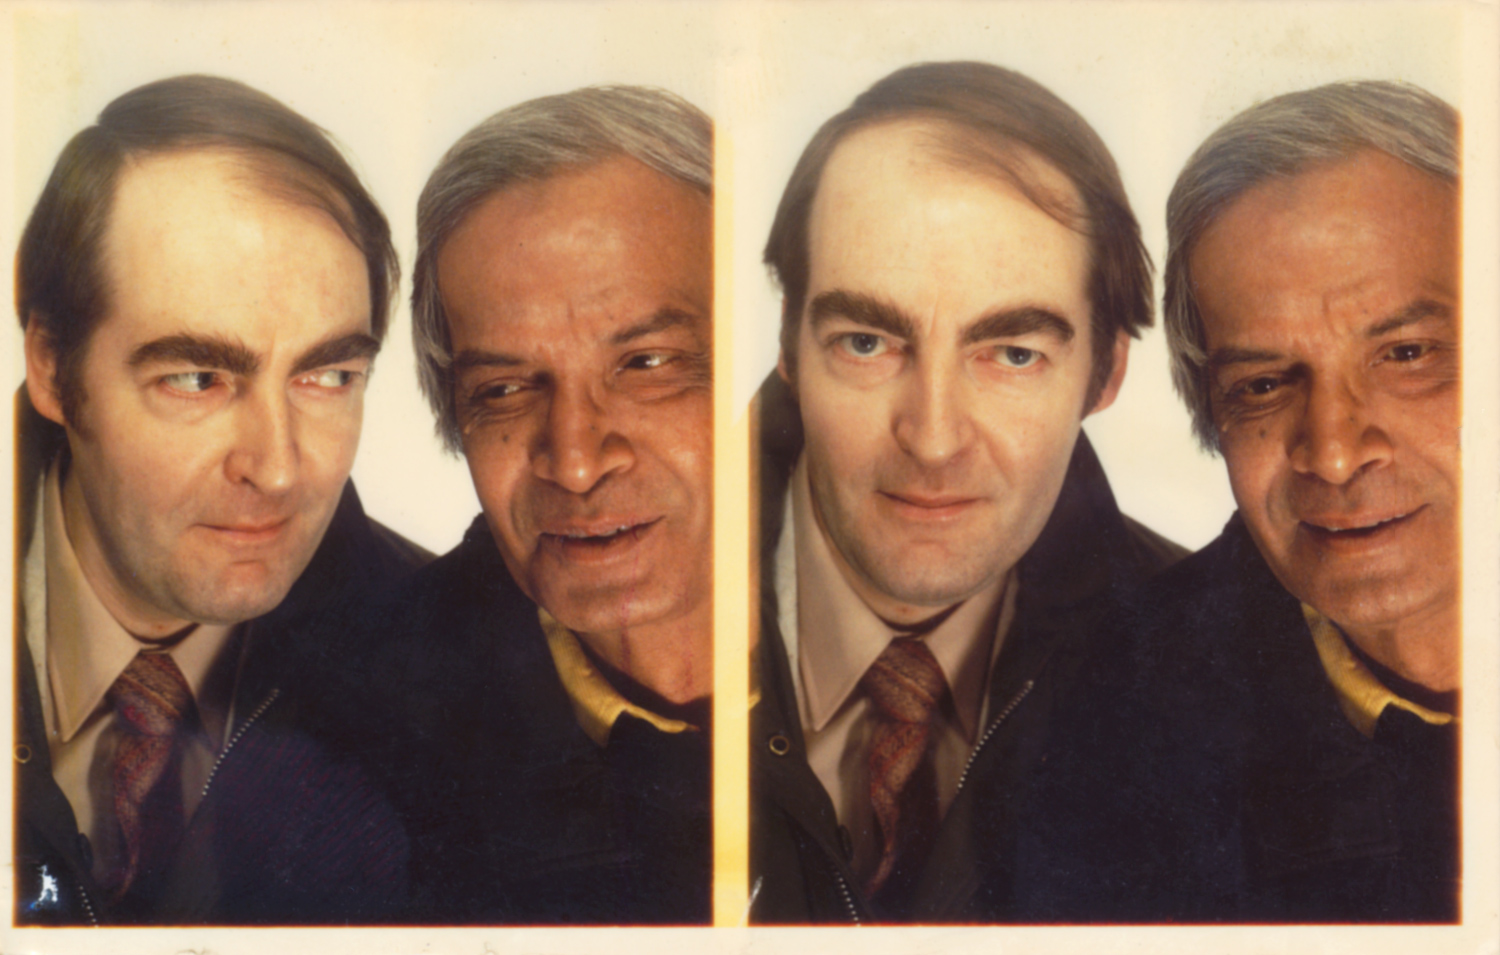 KEVIN WITH DEBEN BHATTACHARYA, TAKEN IN A PHOTO BOOTH IN GARE DU NORD, PARIS, 25 FEBRUARY 1982